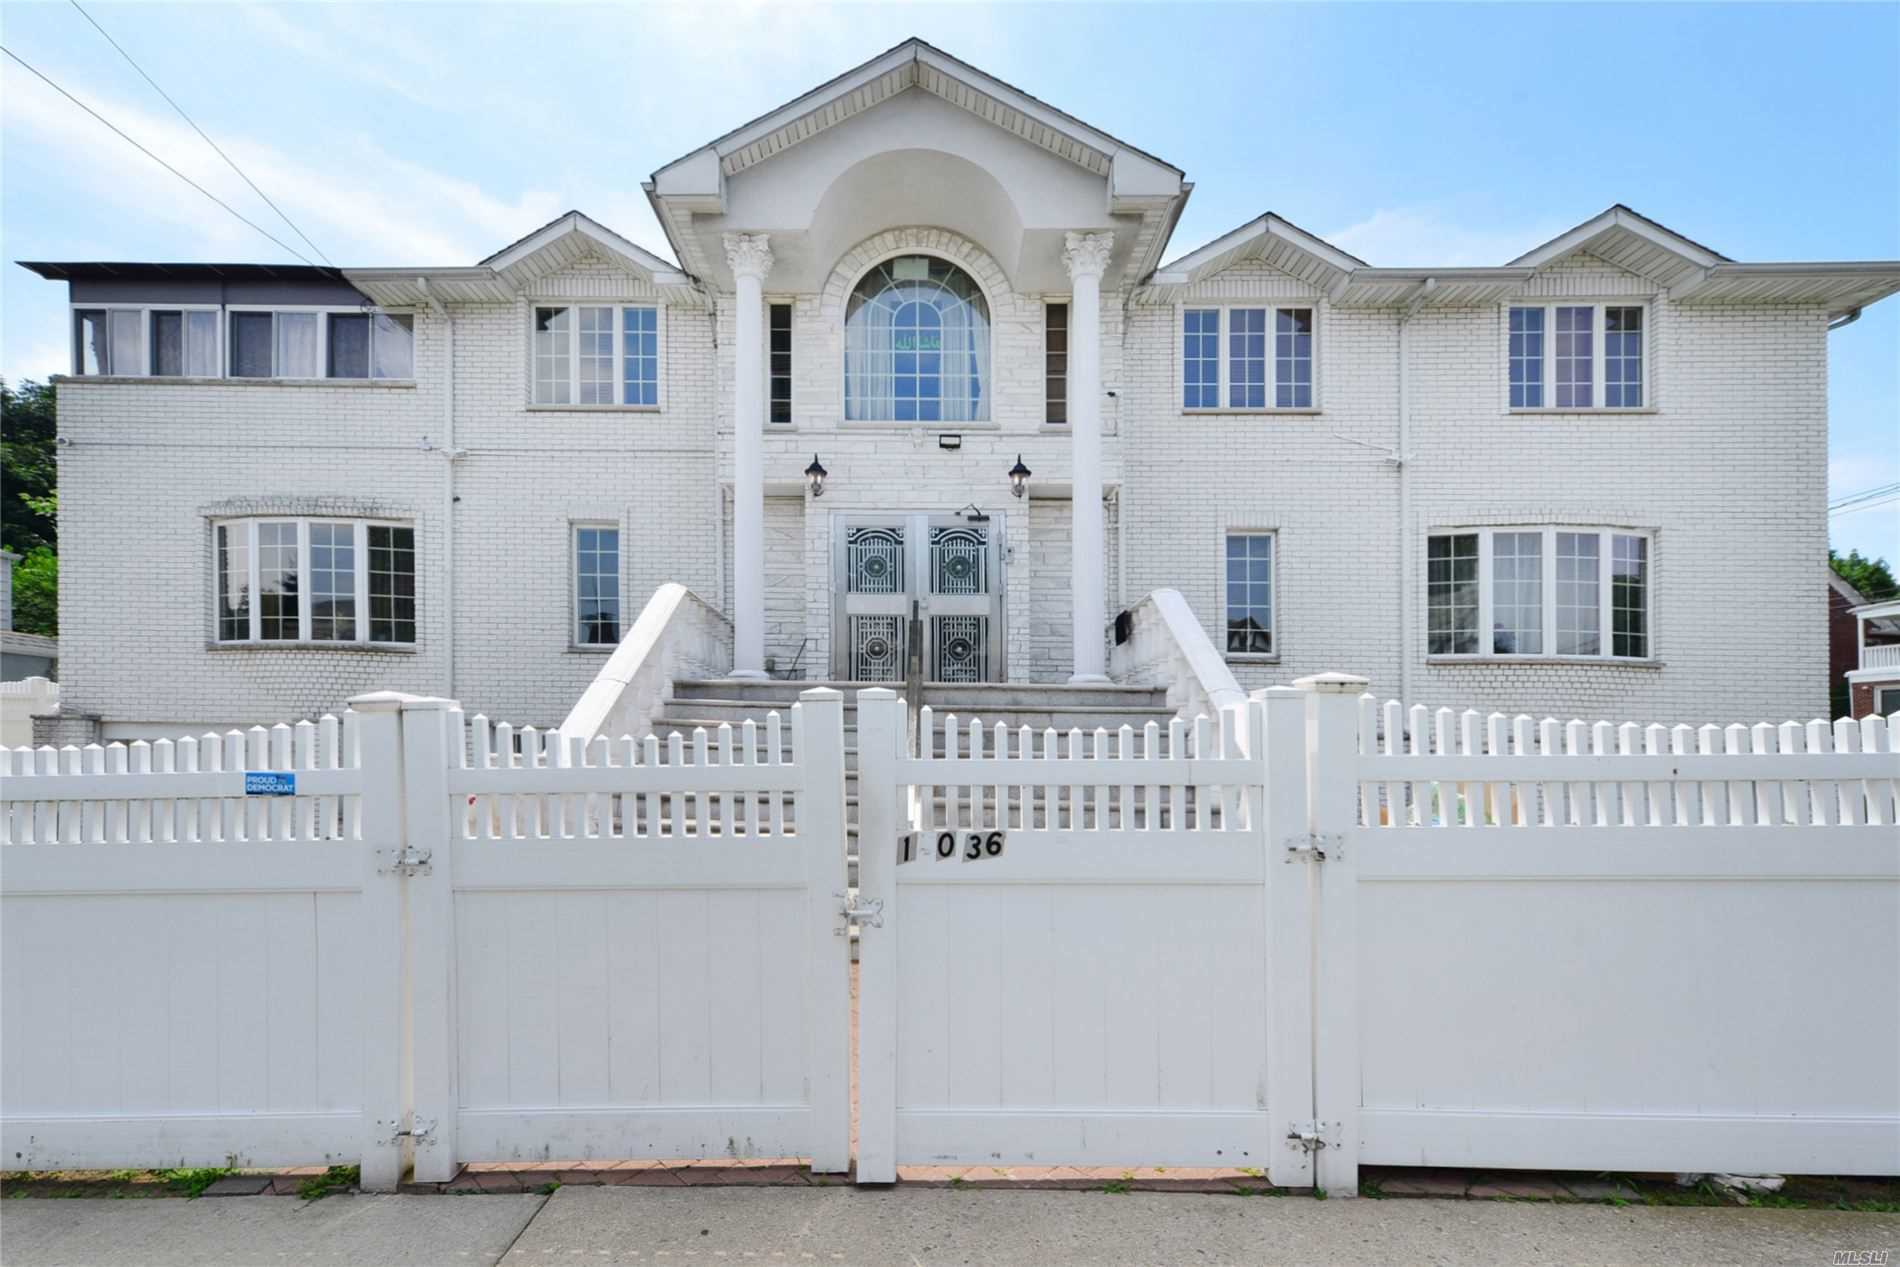 34-01 150 Pl, Flushing, New York 7 Bedroom as one of Homes & Land Real Estate